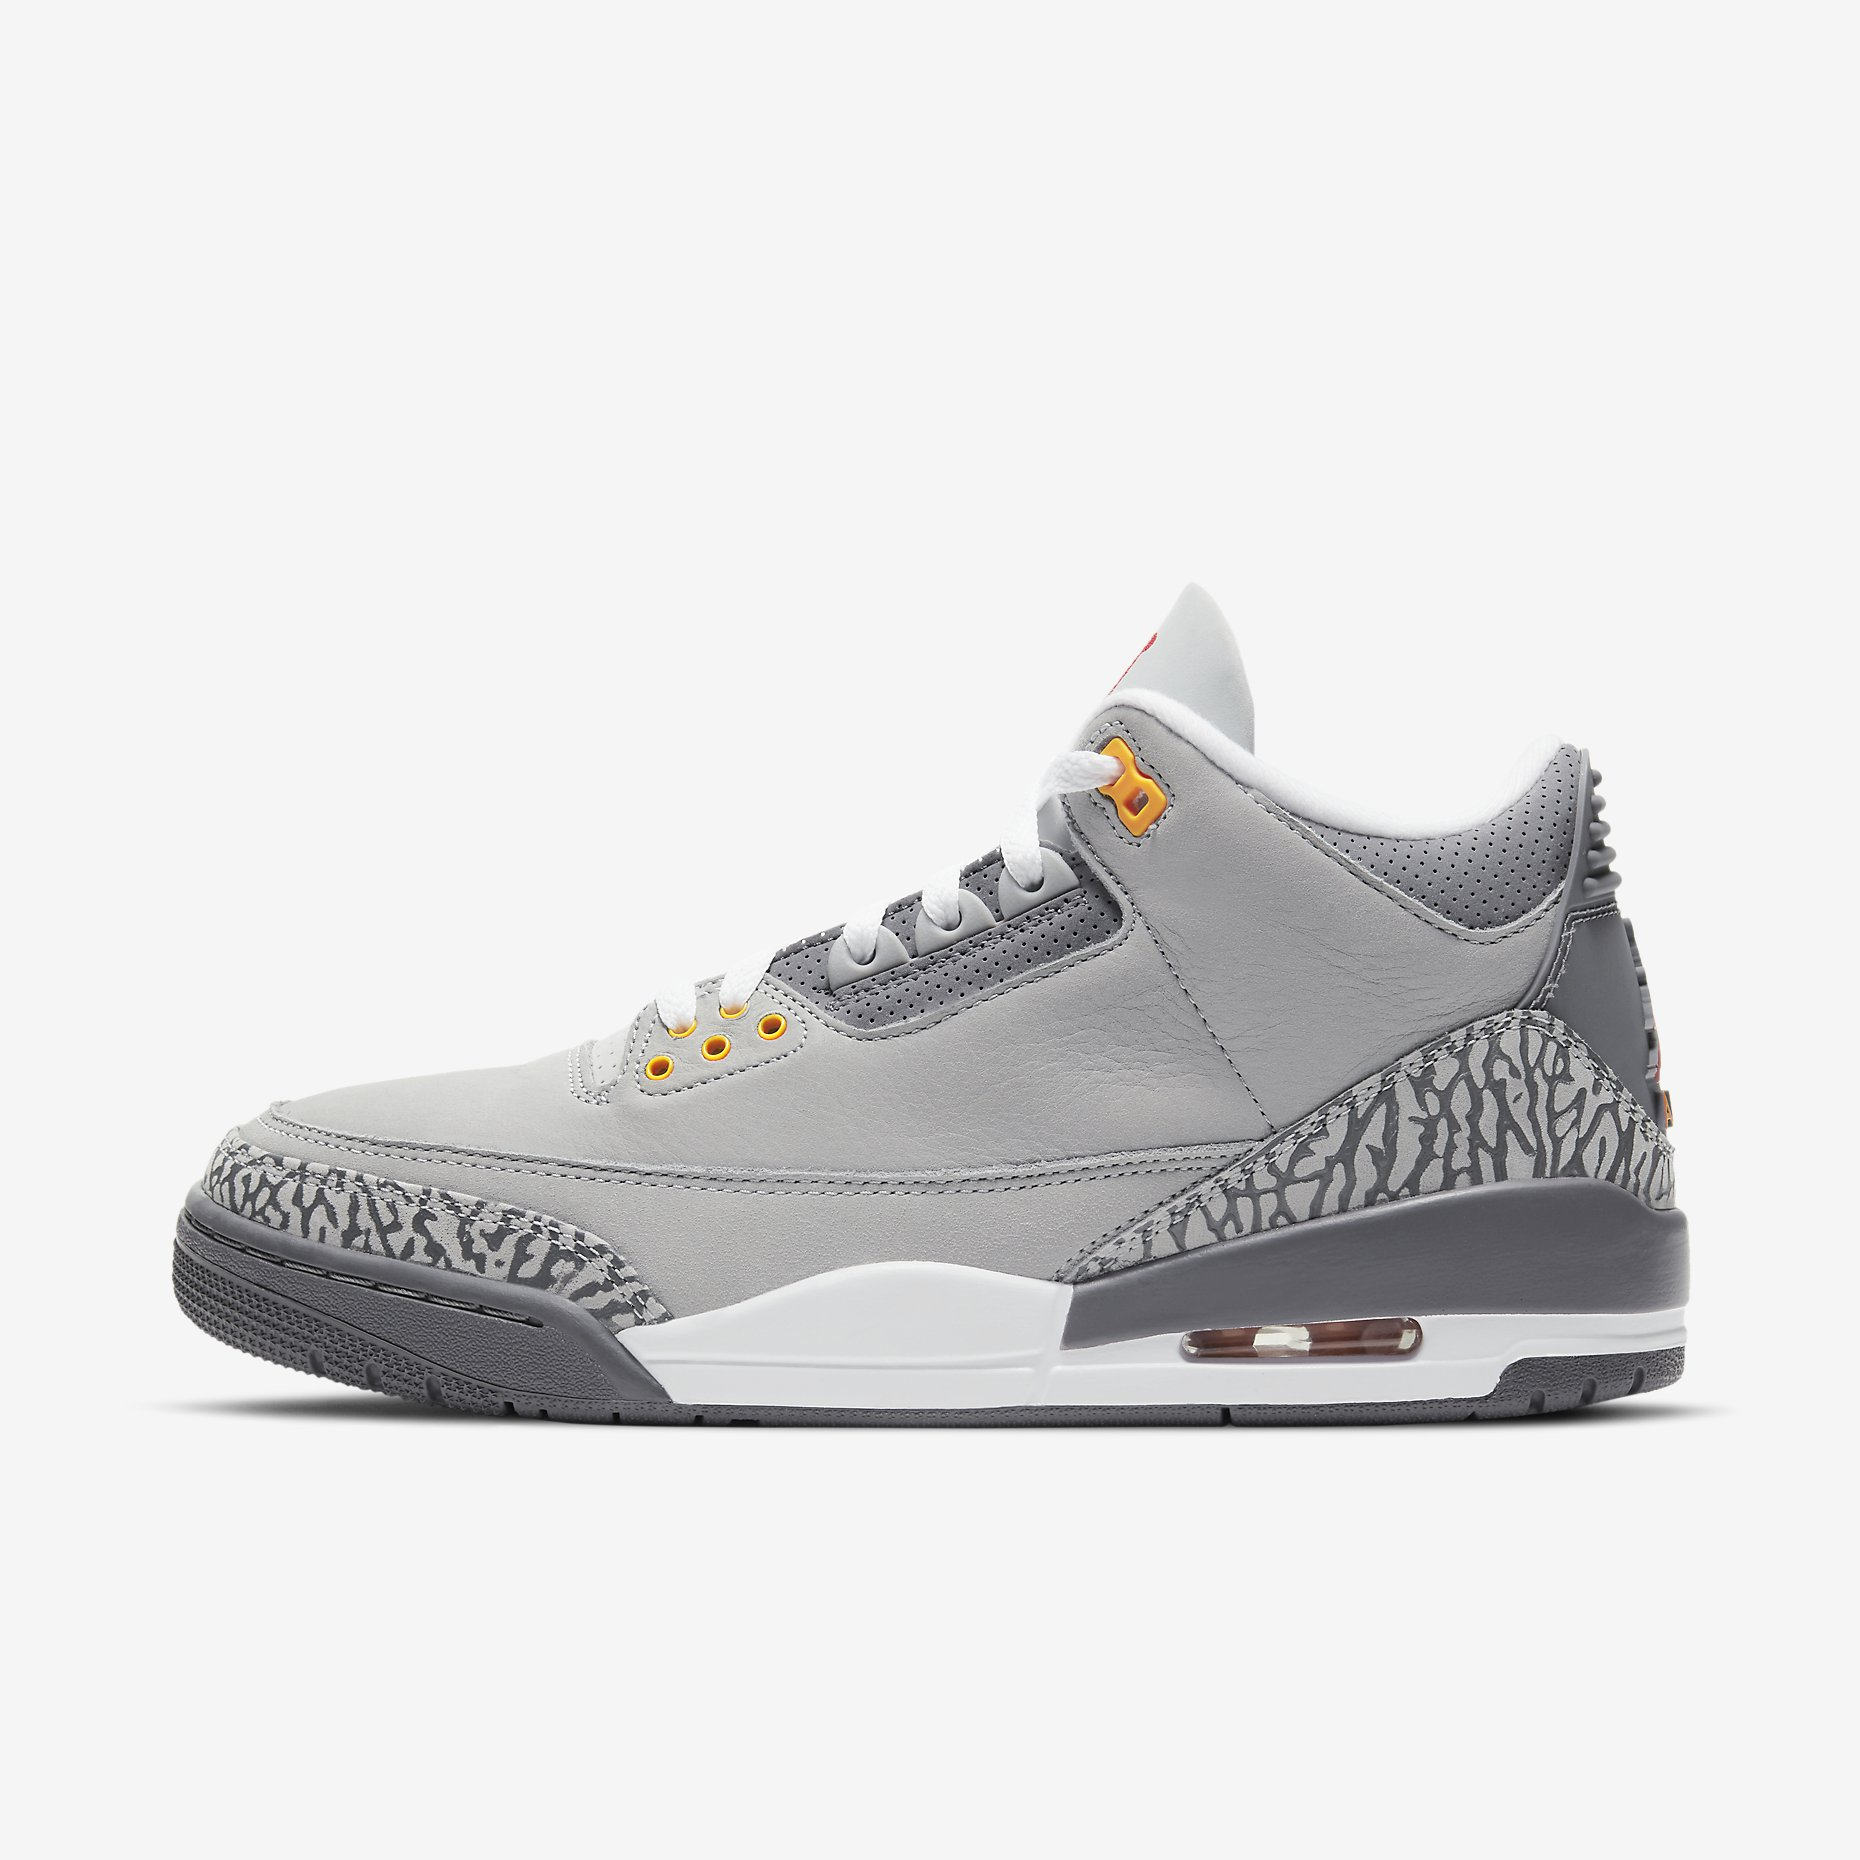 Air Jordan 3 Retro 'Cool Grey'}